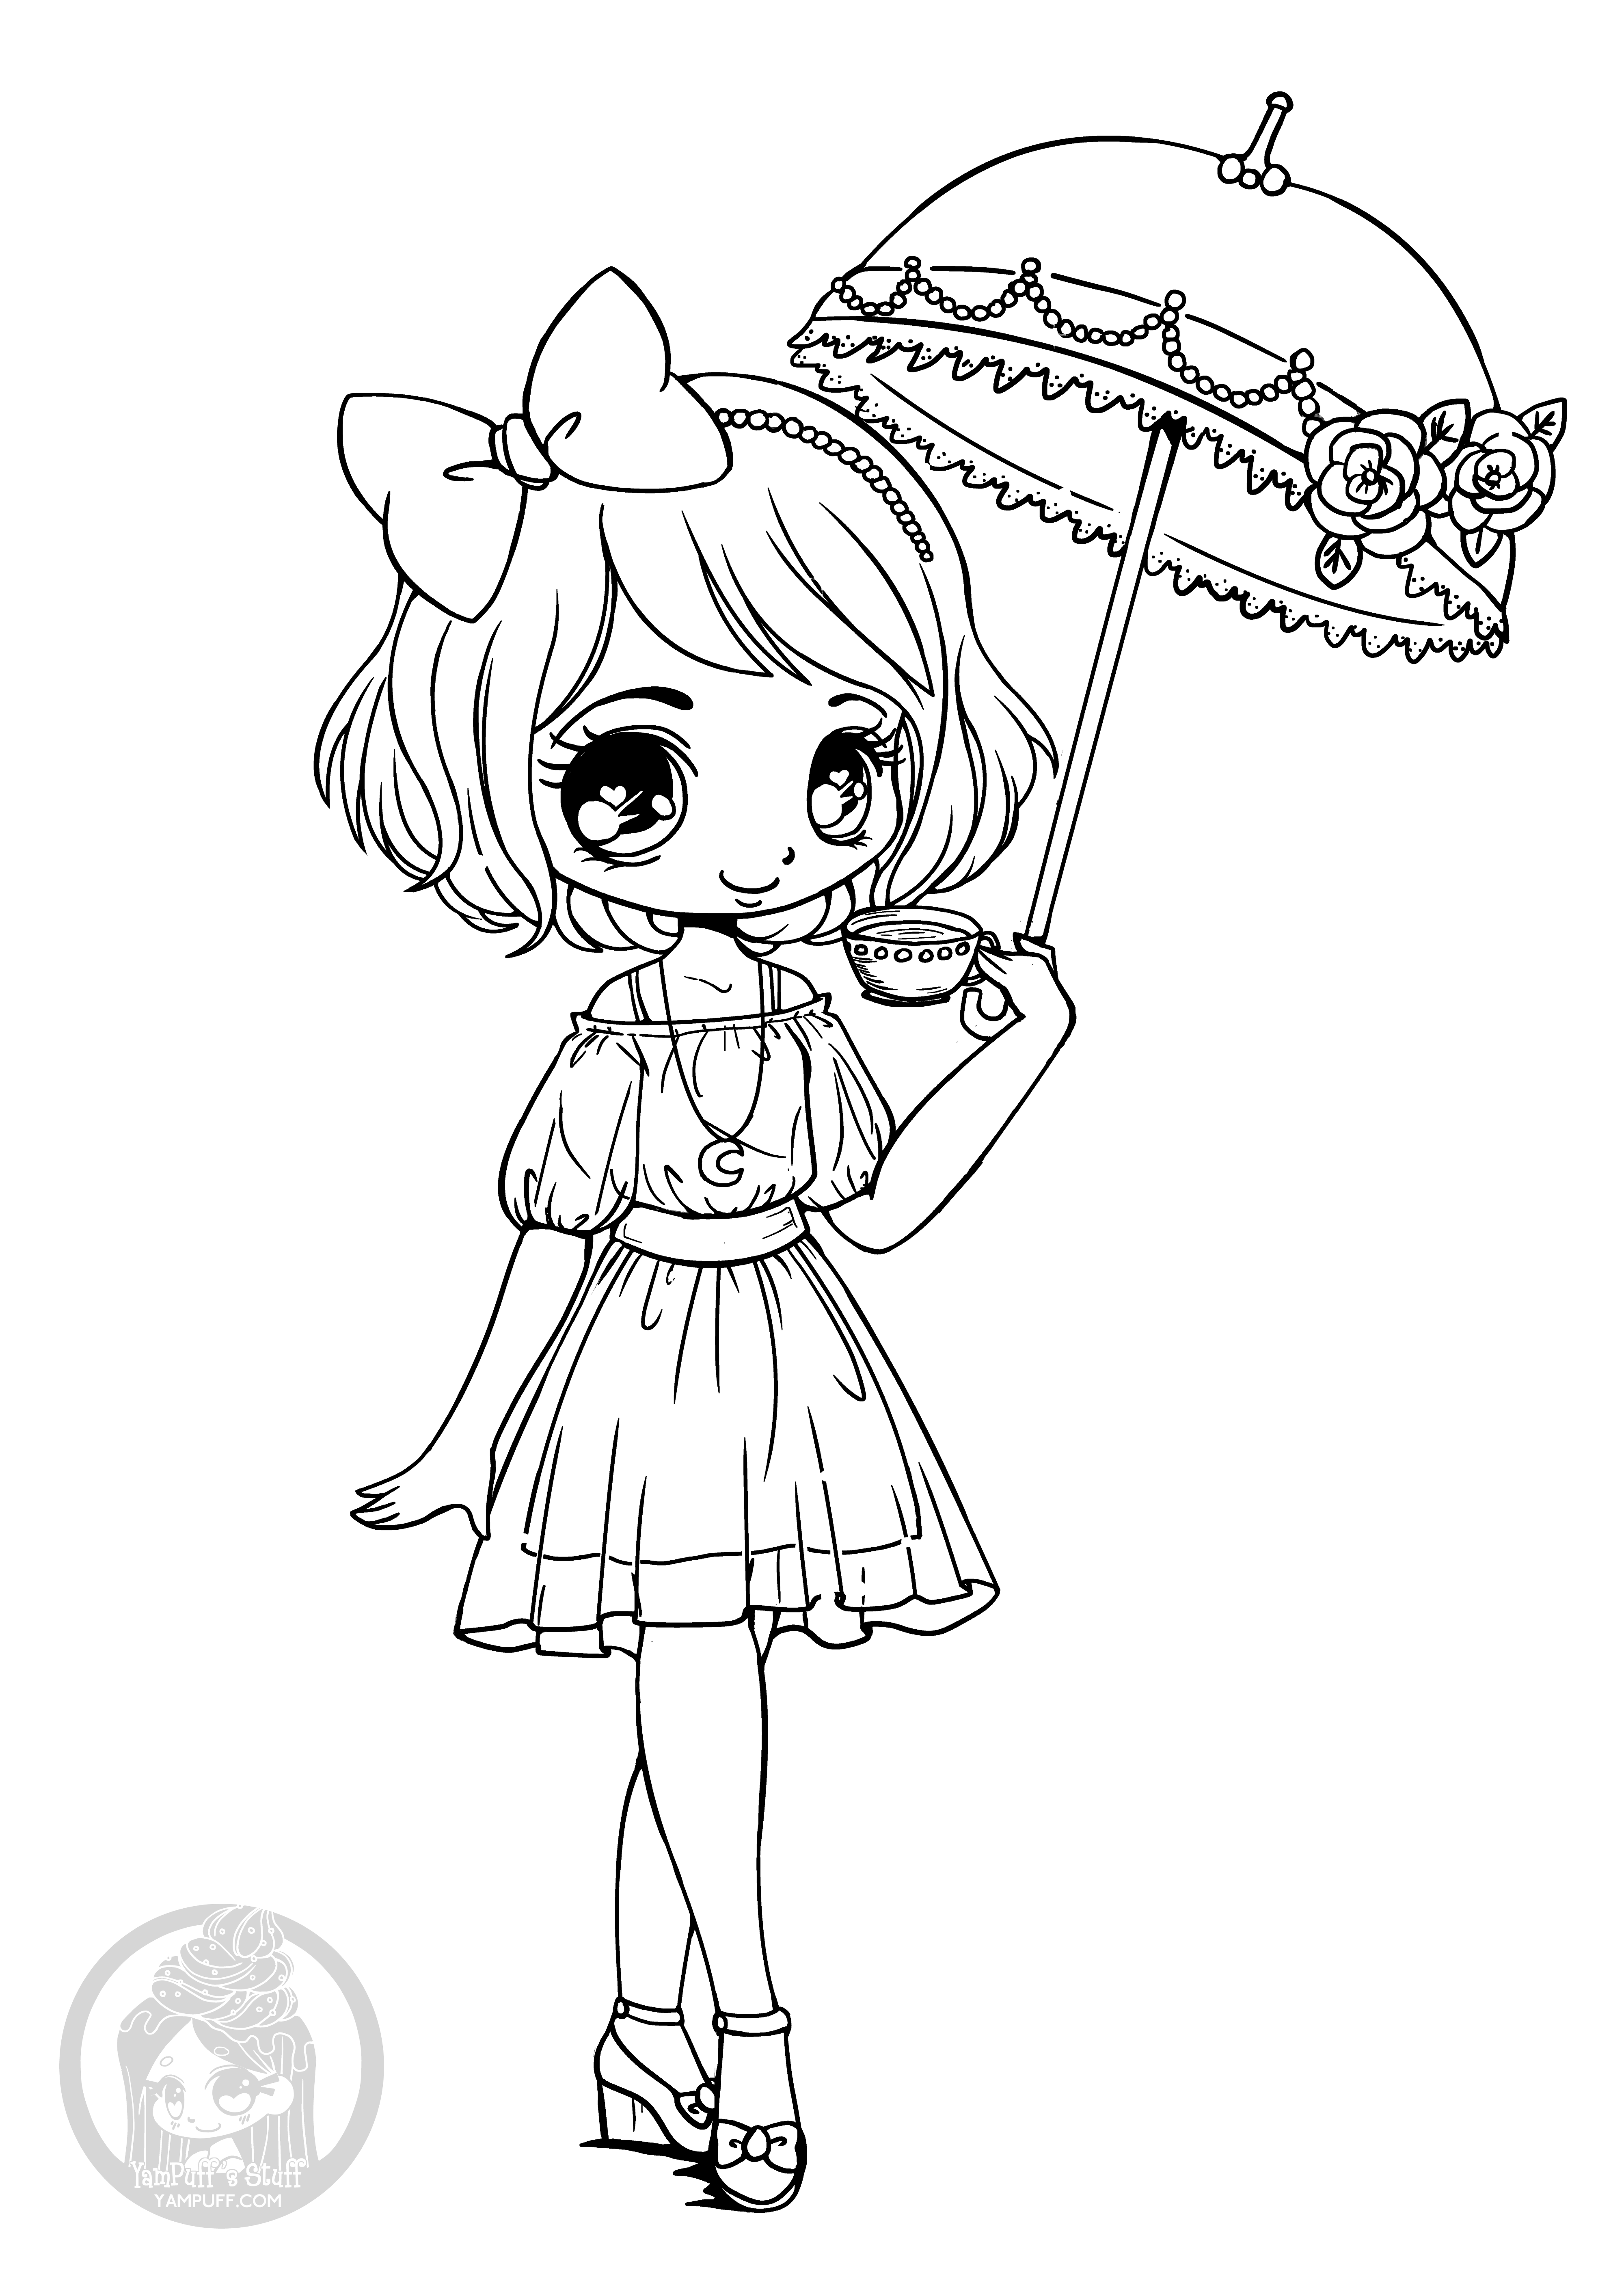 picture of girl coloring page fashion coloring pages for girls printable coloring home girl coloring of picture page